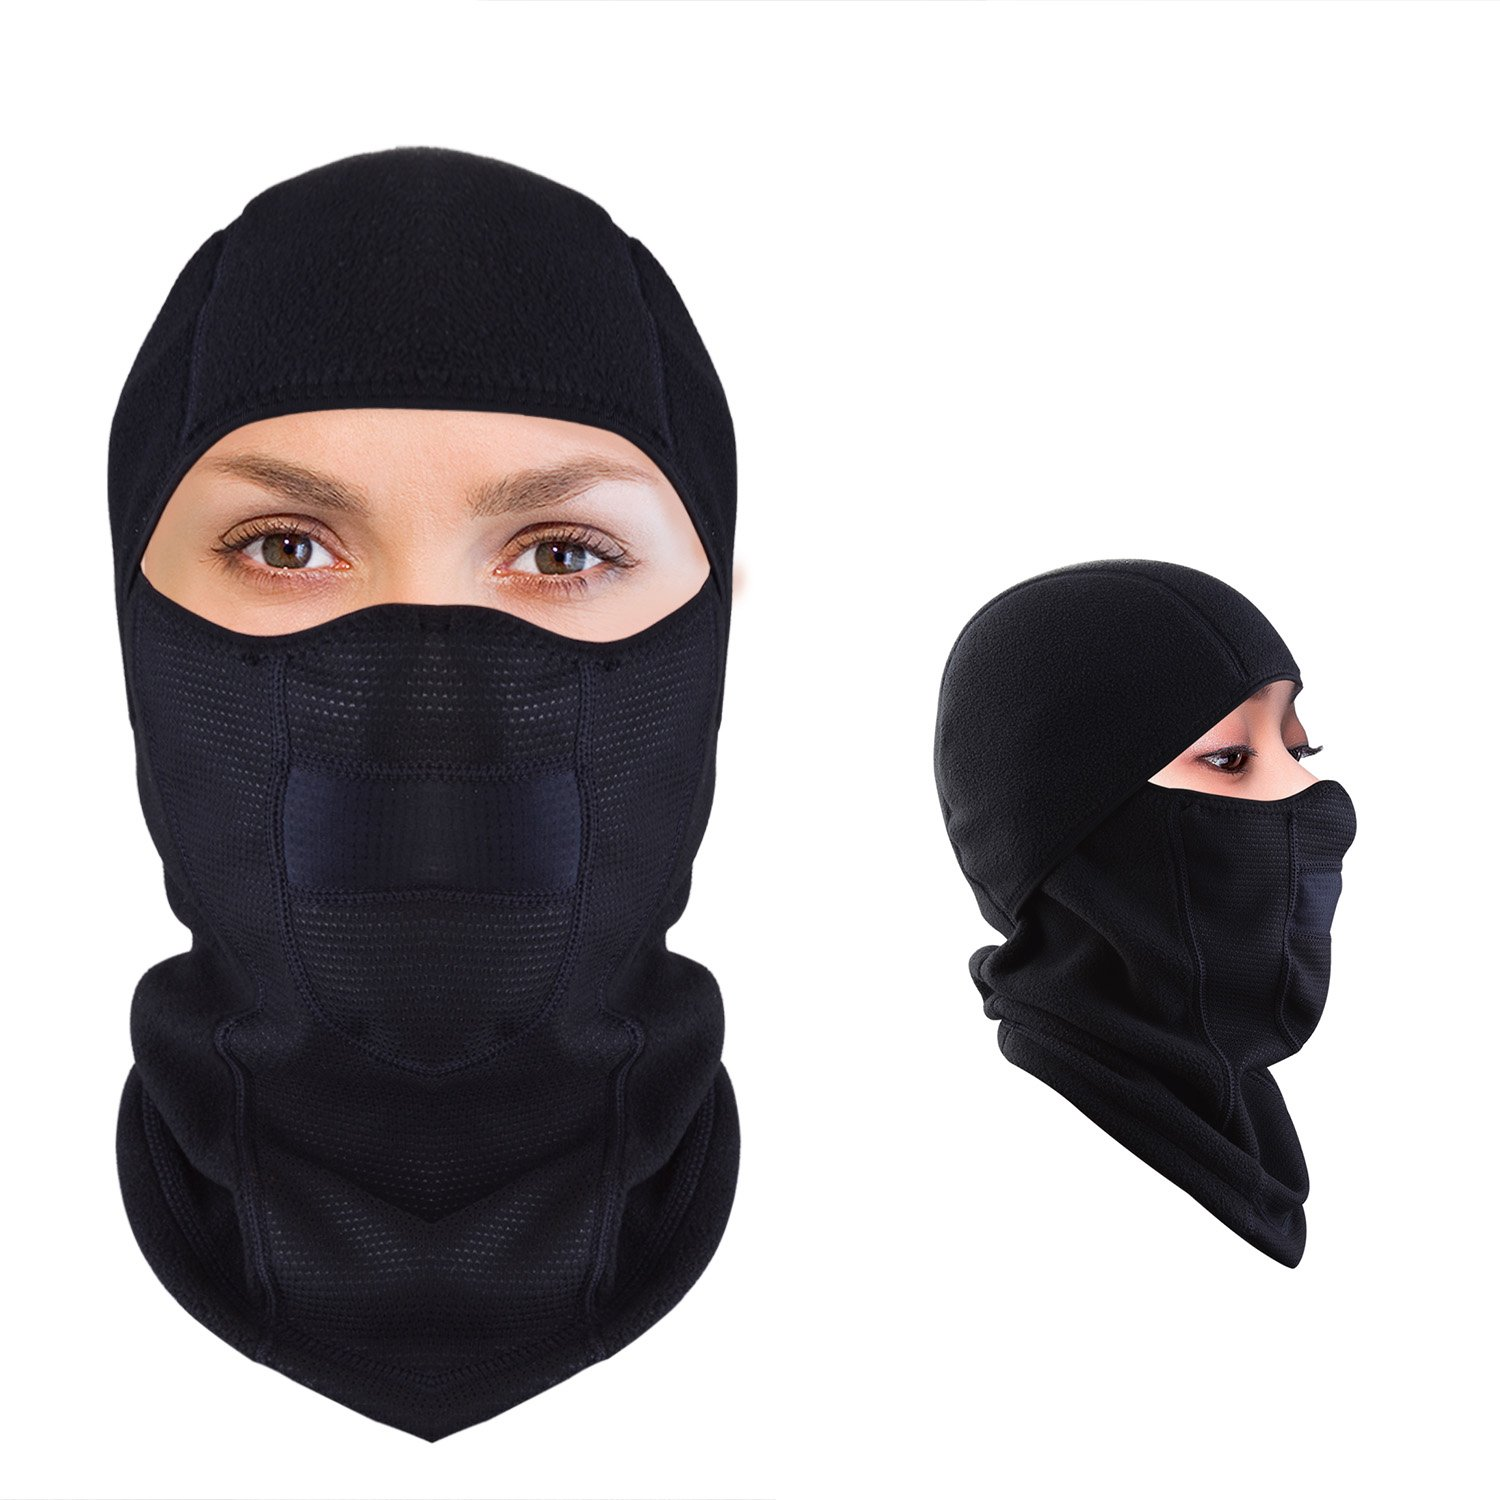 Get Quotations · JMFONE Balaclava Ski Mask Windproof Full Face Mask and  Neck Warmer Cold Weather Winter Motorcycle Running 71c24546f1